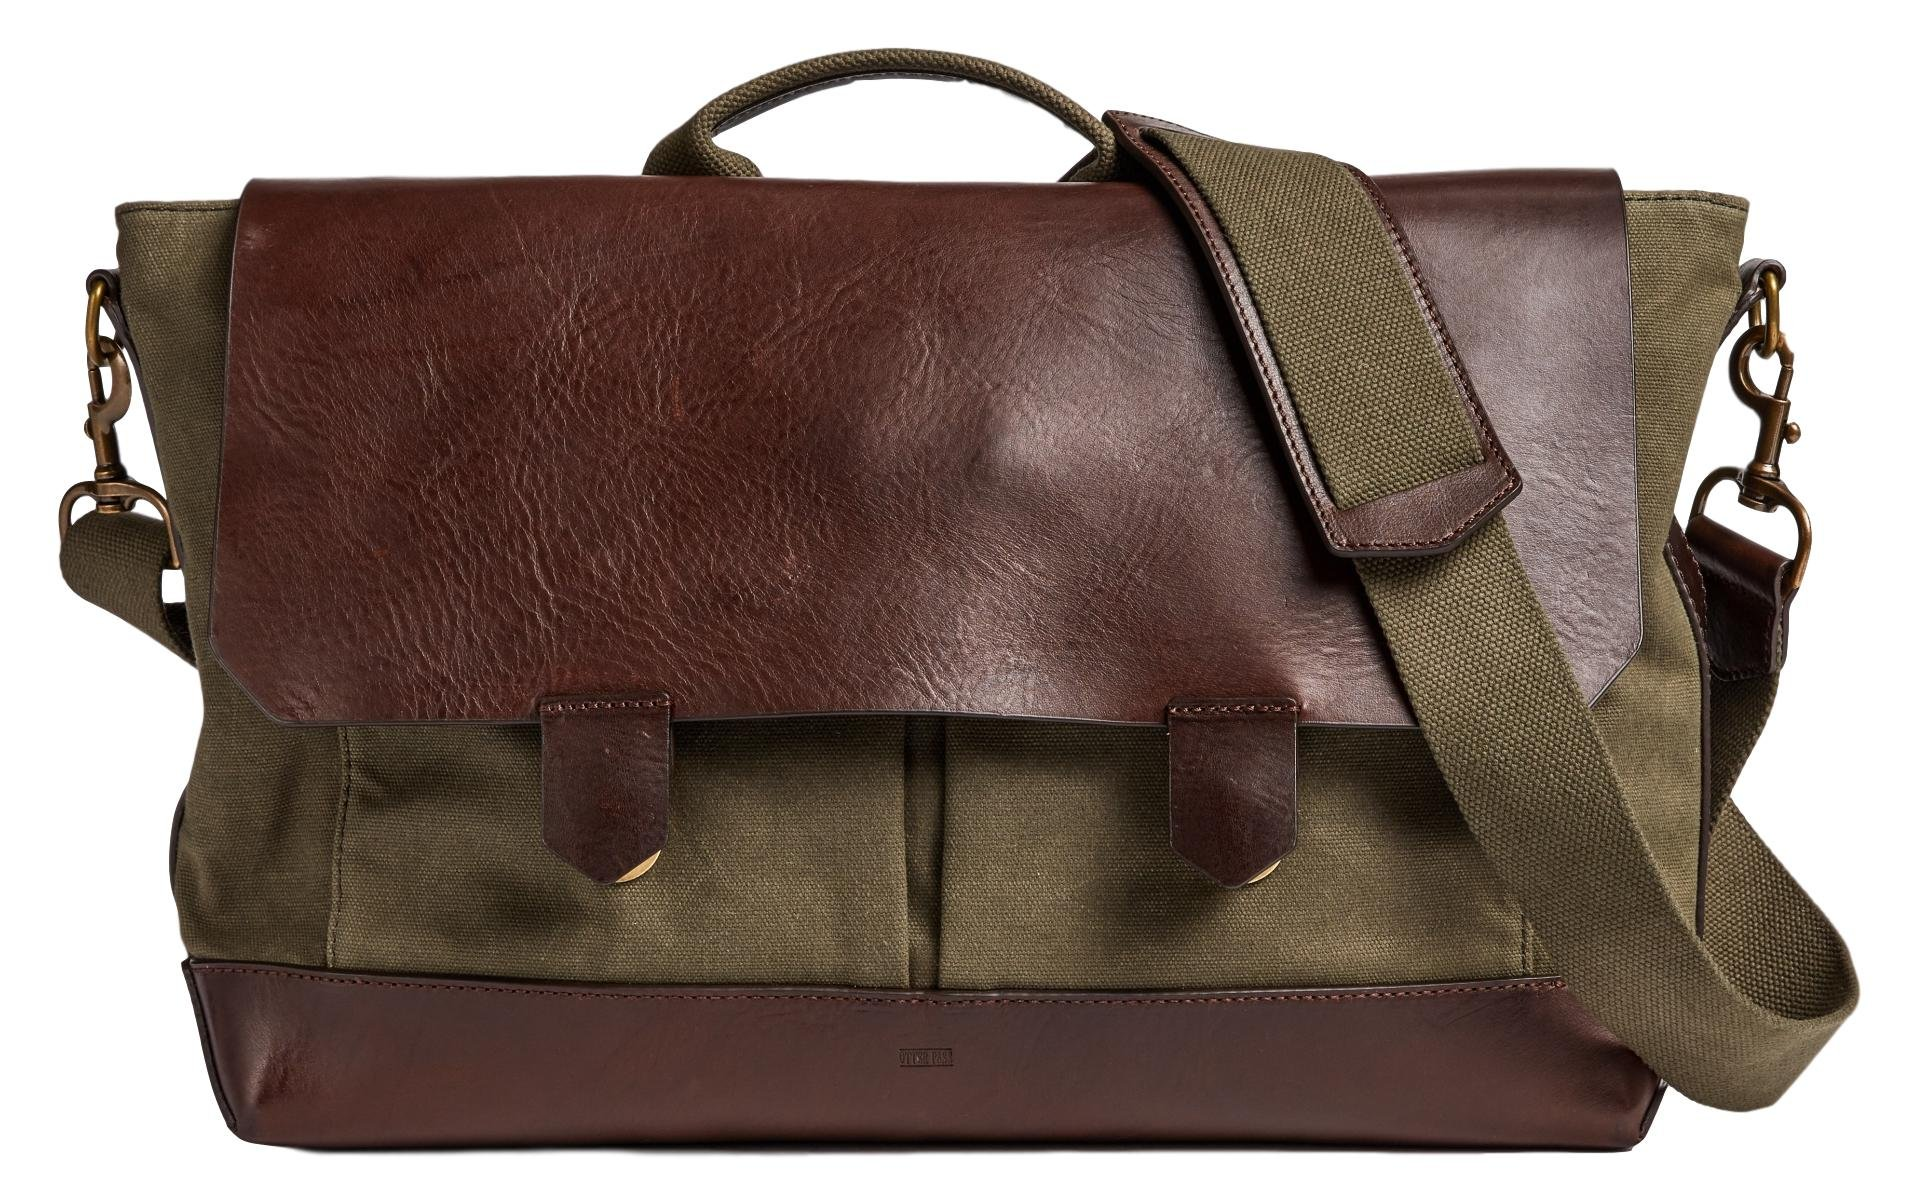 Otter Pass Messenger Bag in Leather & Canvas - Olive & Espresso